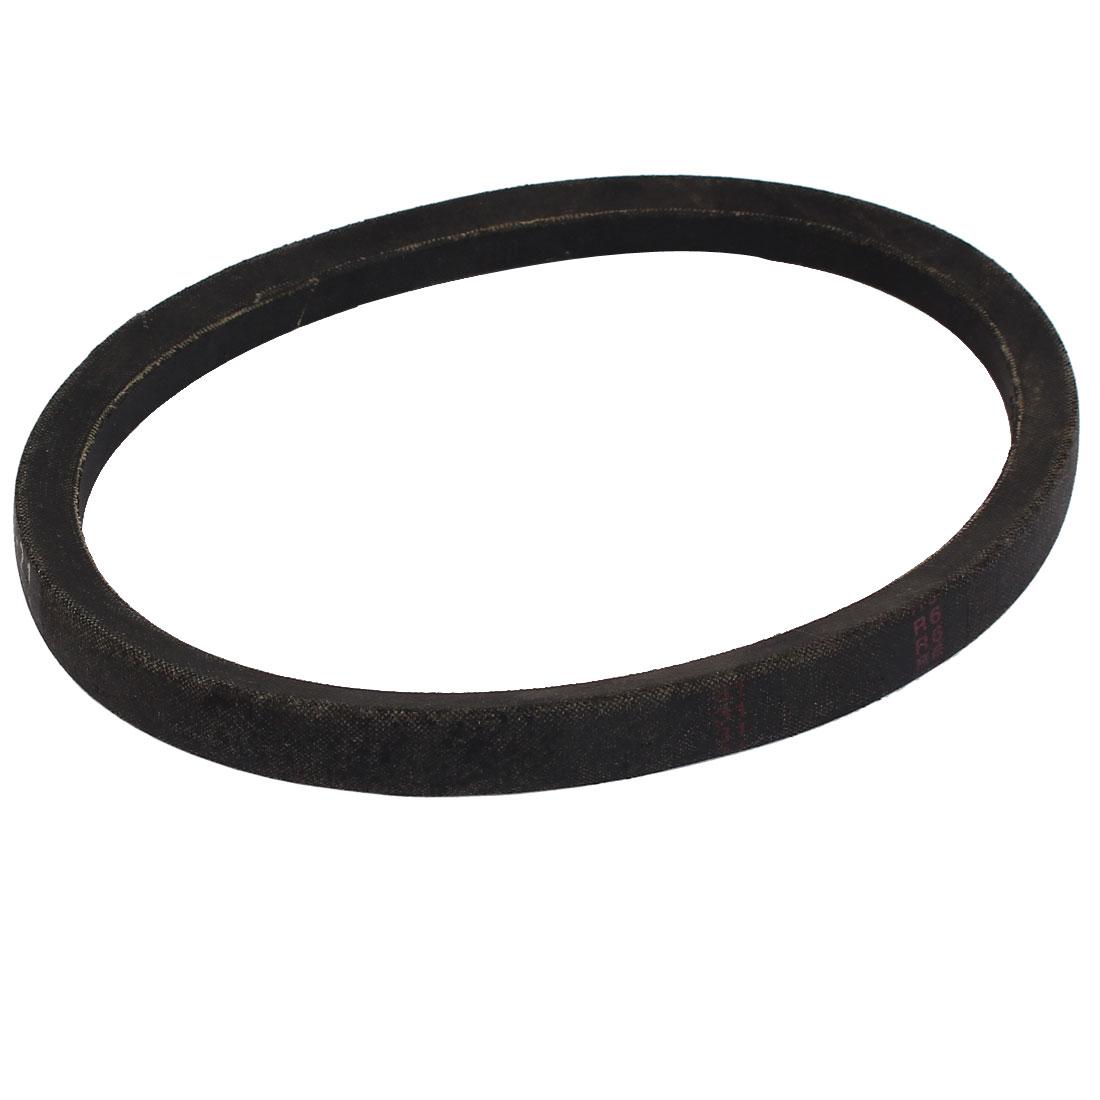 B21 Rubber V-shaped Drive Belt Black 11mm Thick 21-inch x 0.67-inch